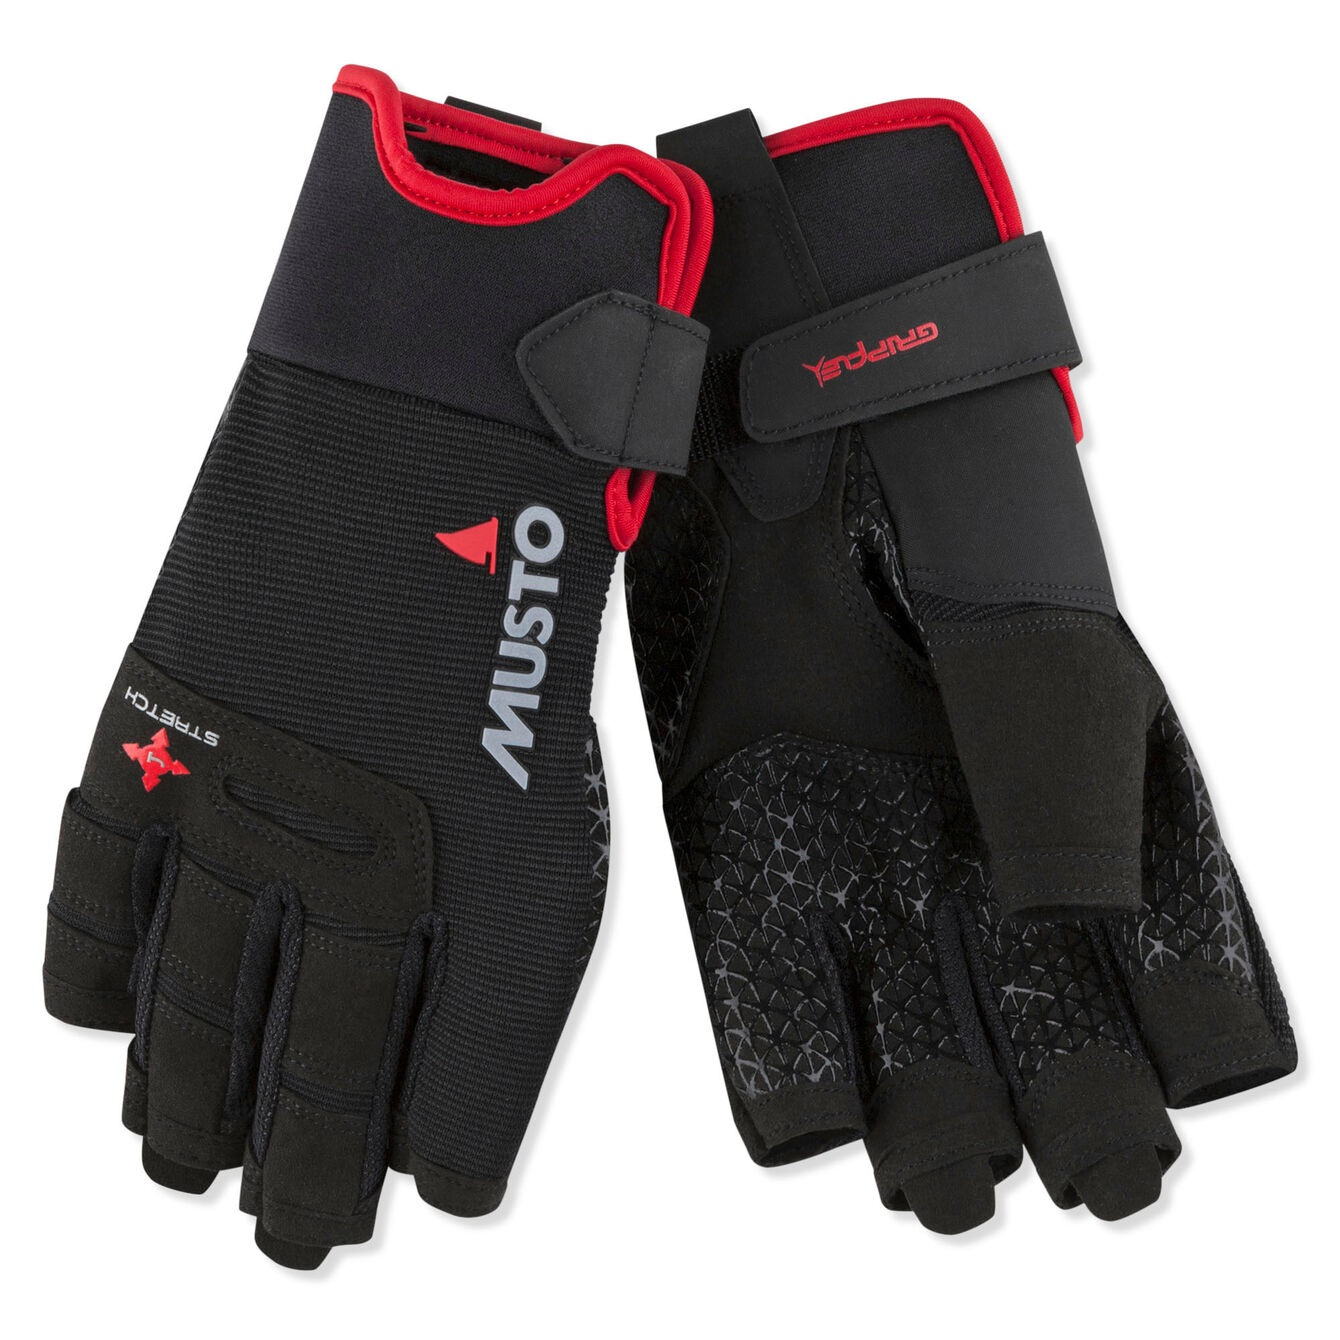 PERFORMANCE SF GLOVES